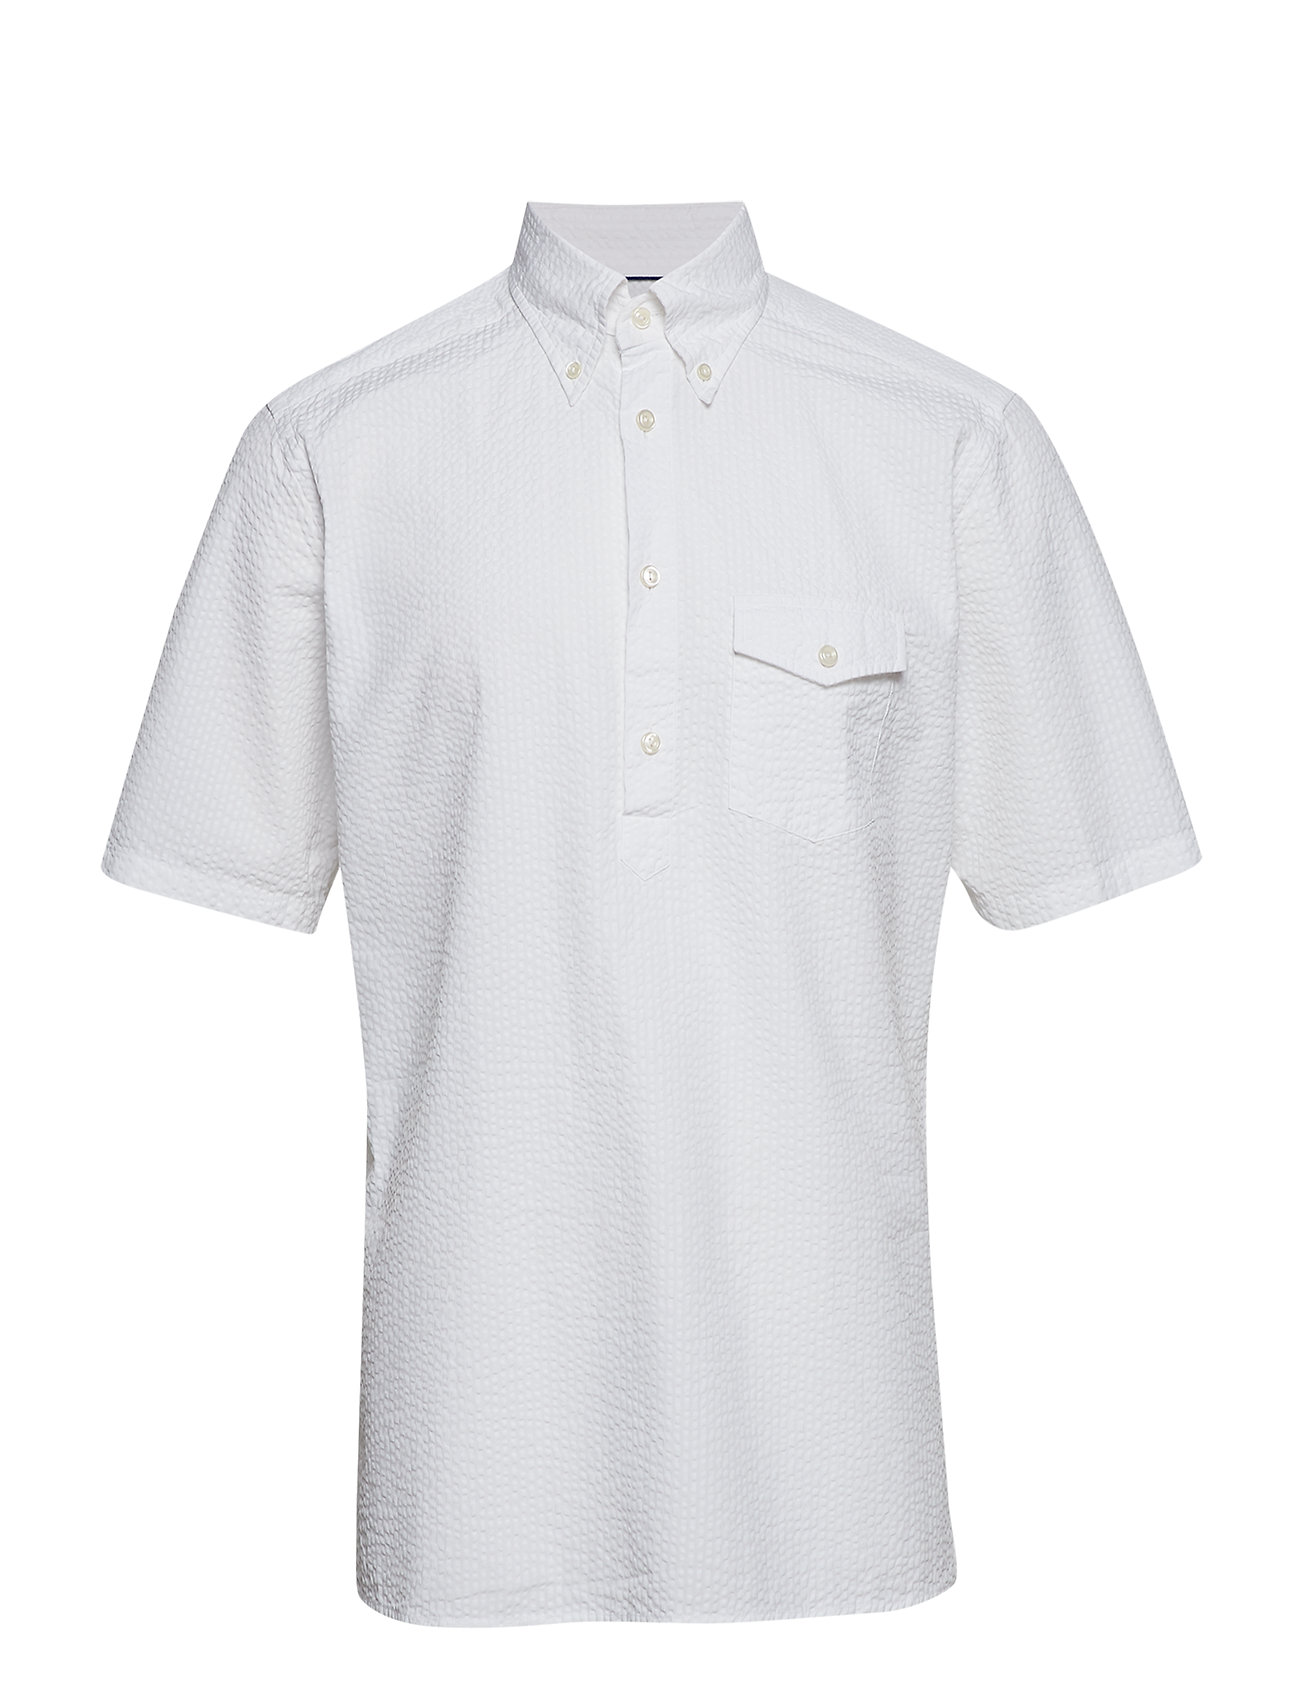 Eton White Seersucker Short Sleeve Popover Shirt - WHITE